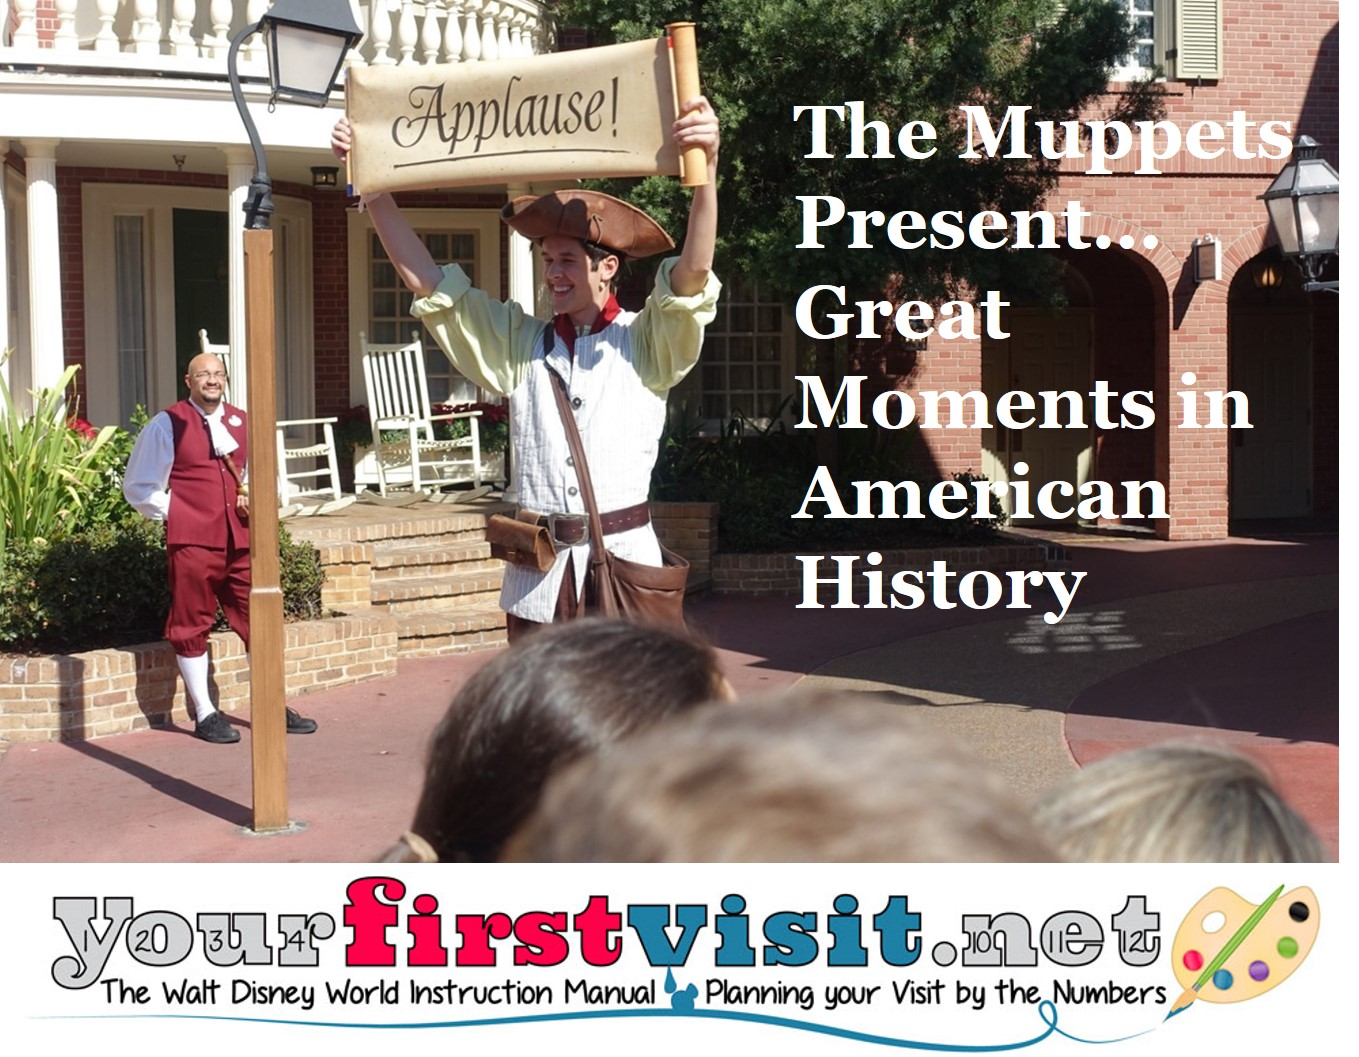 the-muppets-present-great-moments-in-american-history-from-yourfirstvisit-net